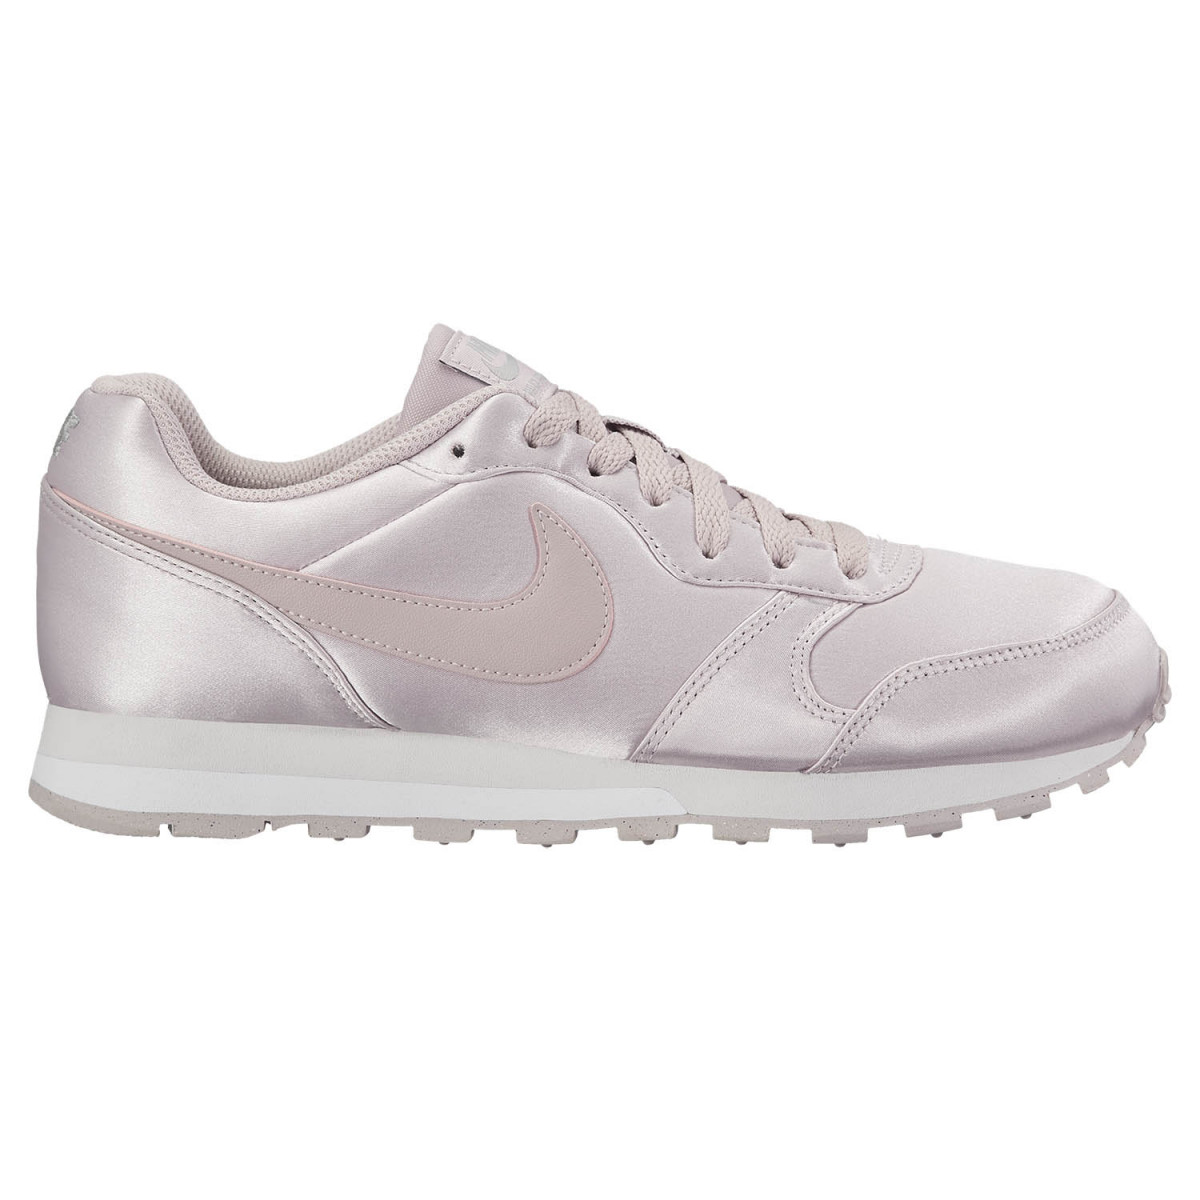 lowest price c7541 da2d2 Zapatillas Nike Md Runner 2